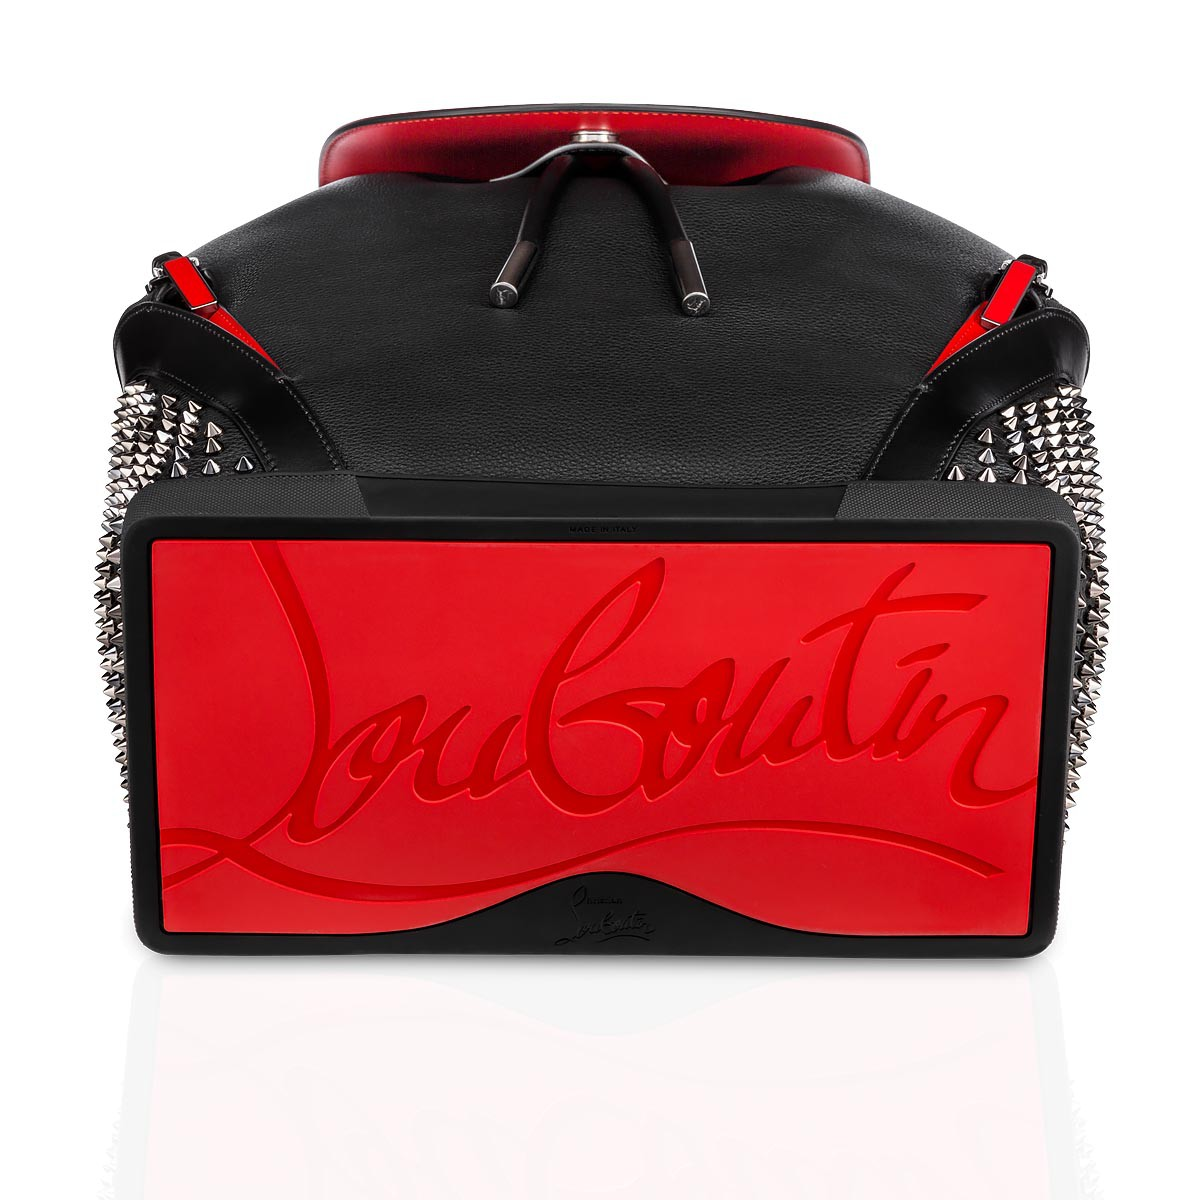 a486985b4e1 Explorafunk Backpack Black Calfskin - Handbags - Christian Louboutin